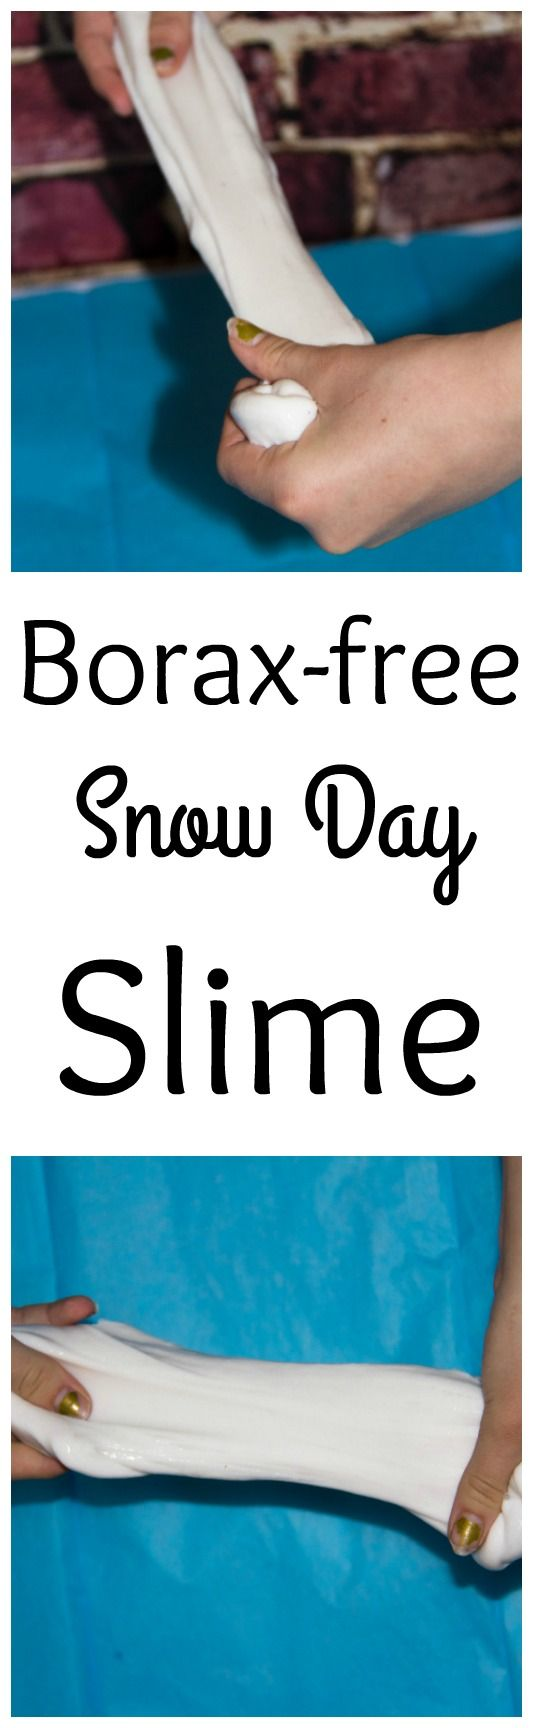 Want To Make Slime Without Borax? This Is A Simple Borax Free Slime Recipe  That